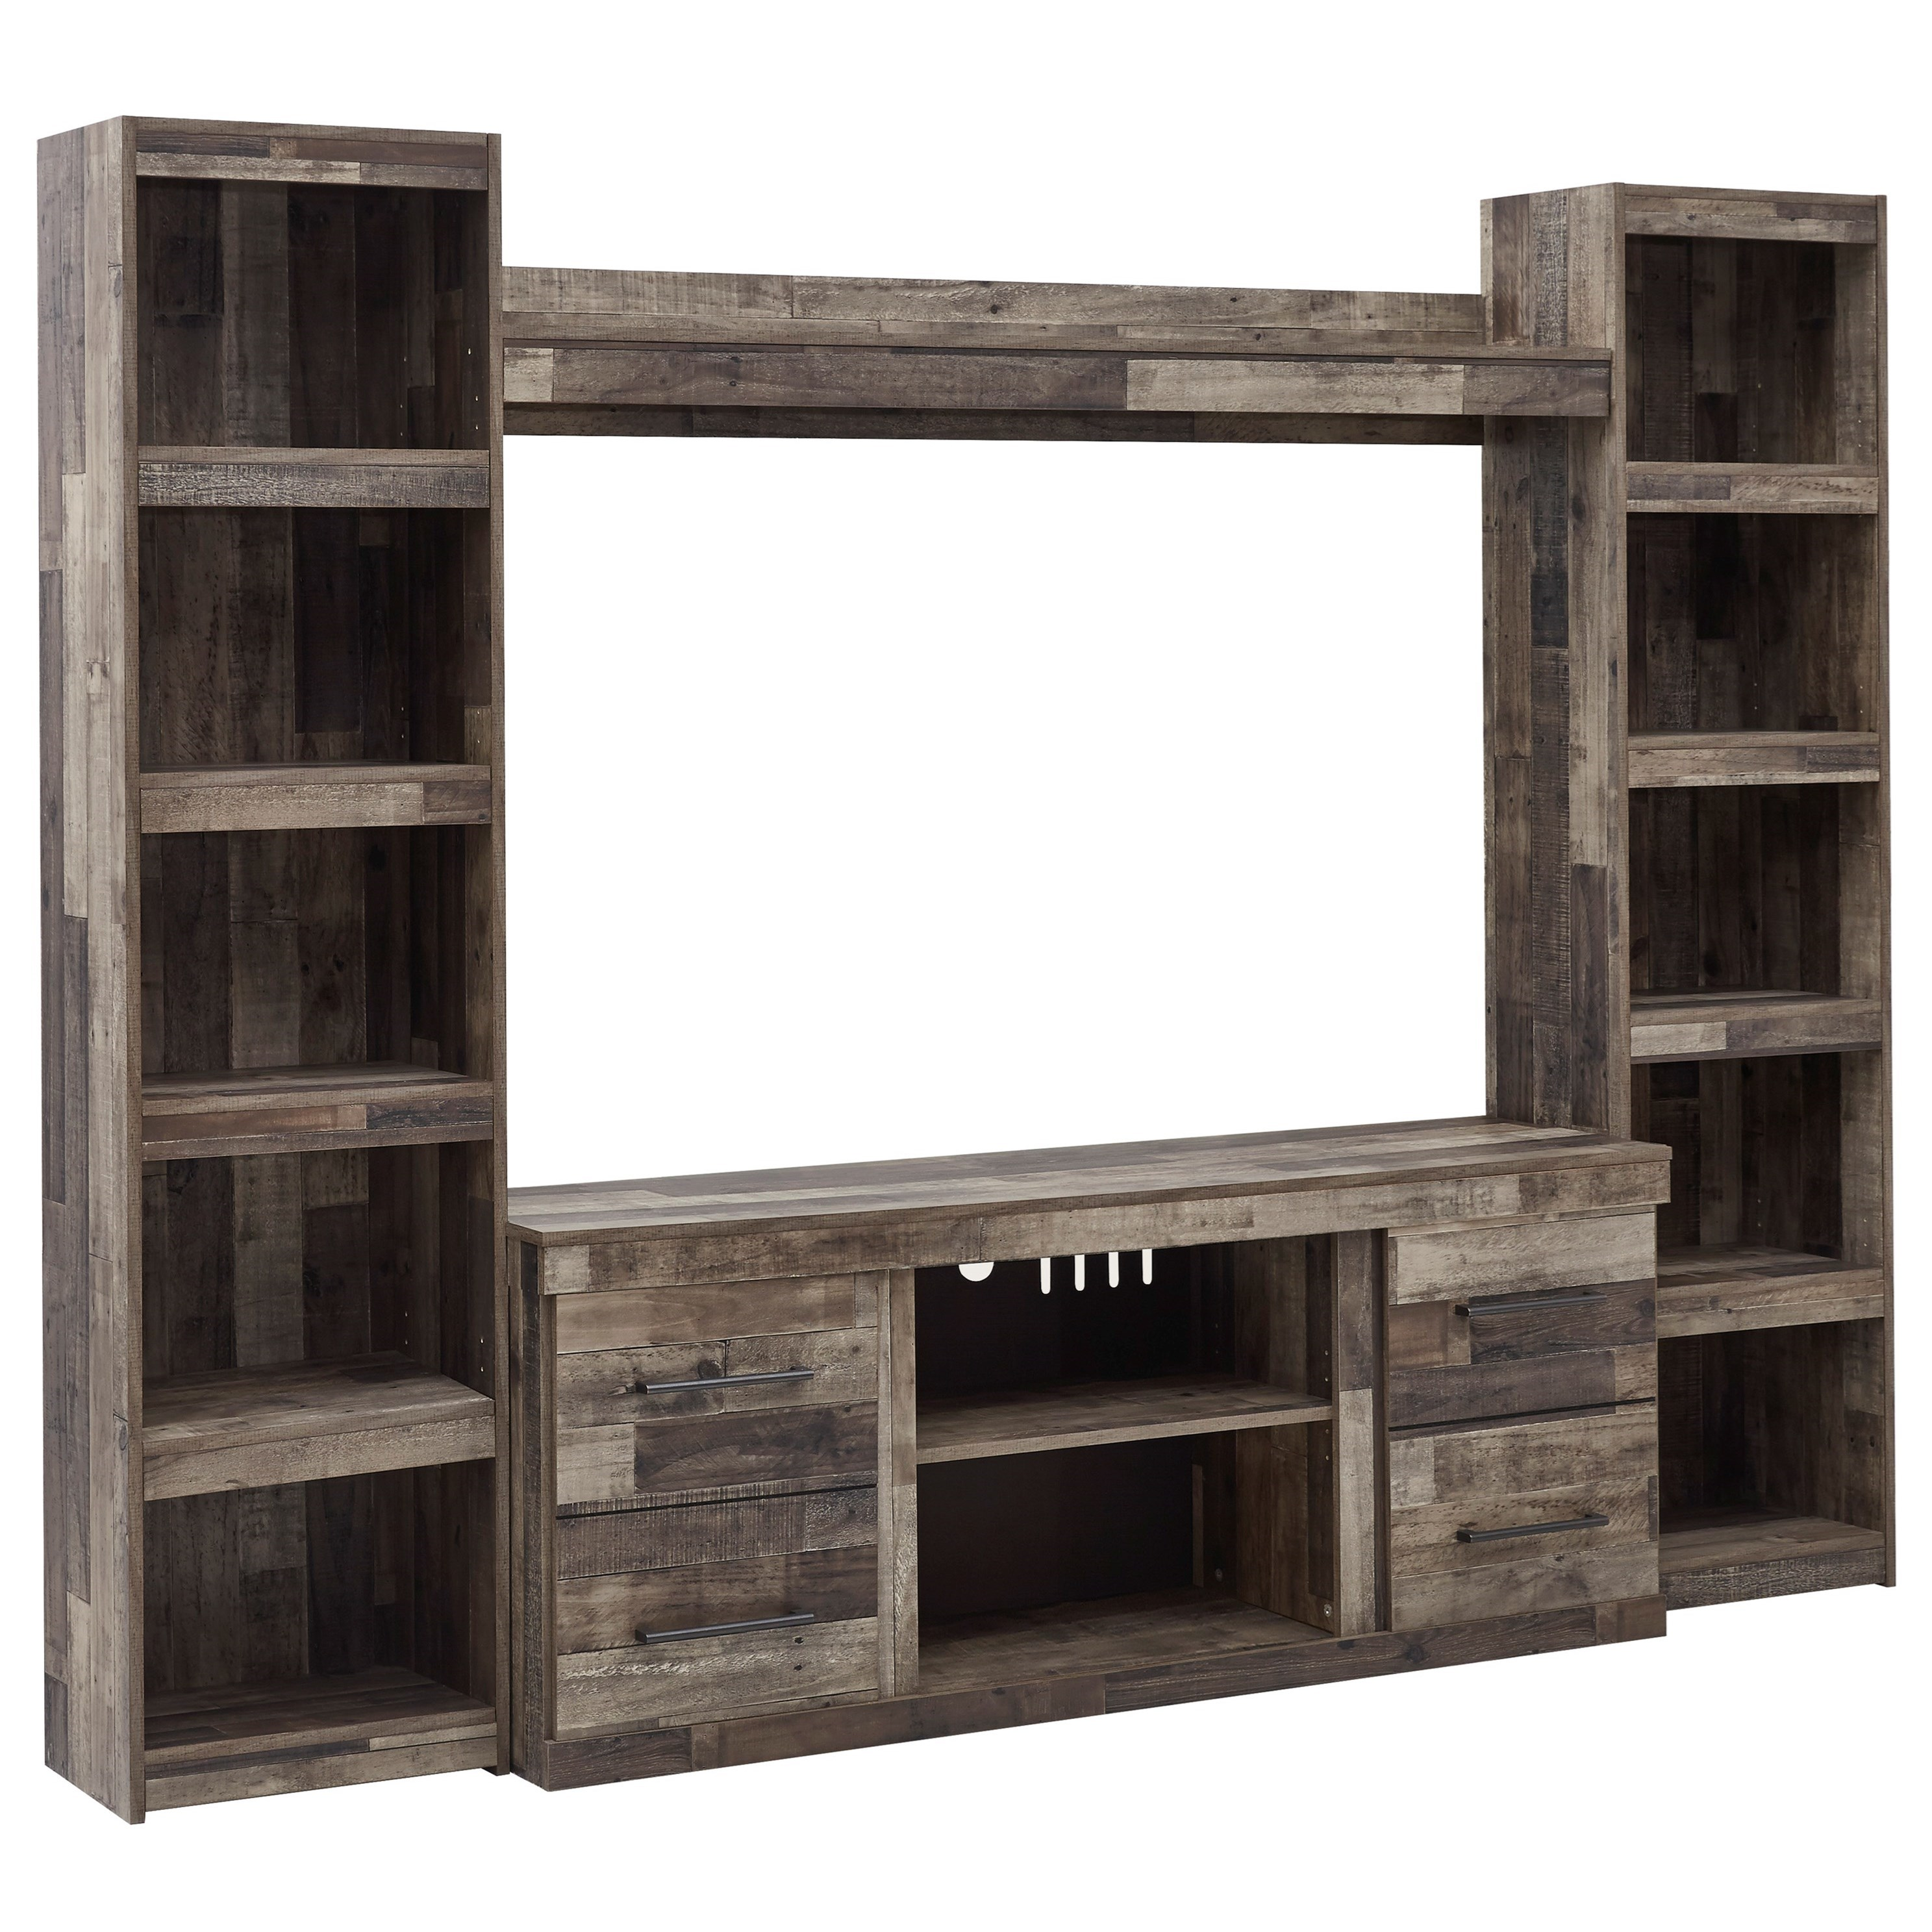 Derekson Entertainment Wall Unit by Signature Design by Ashley at Smart Buy Furniture